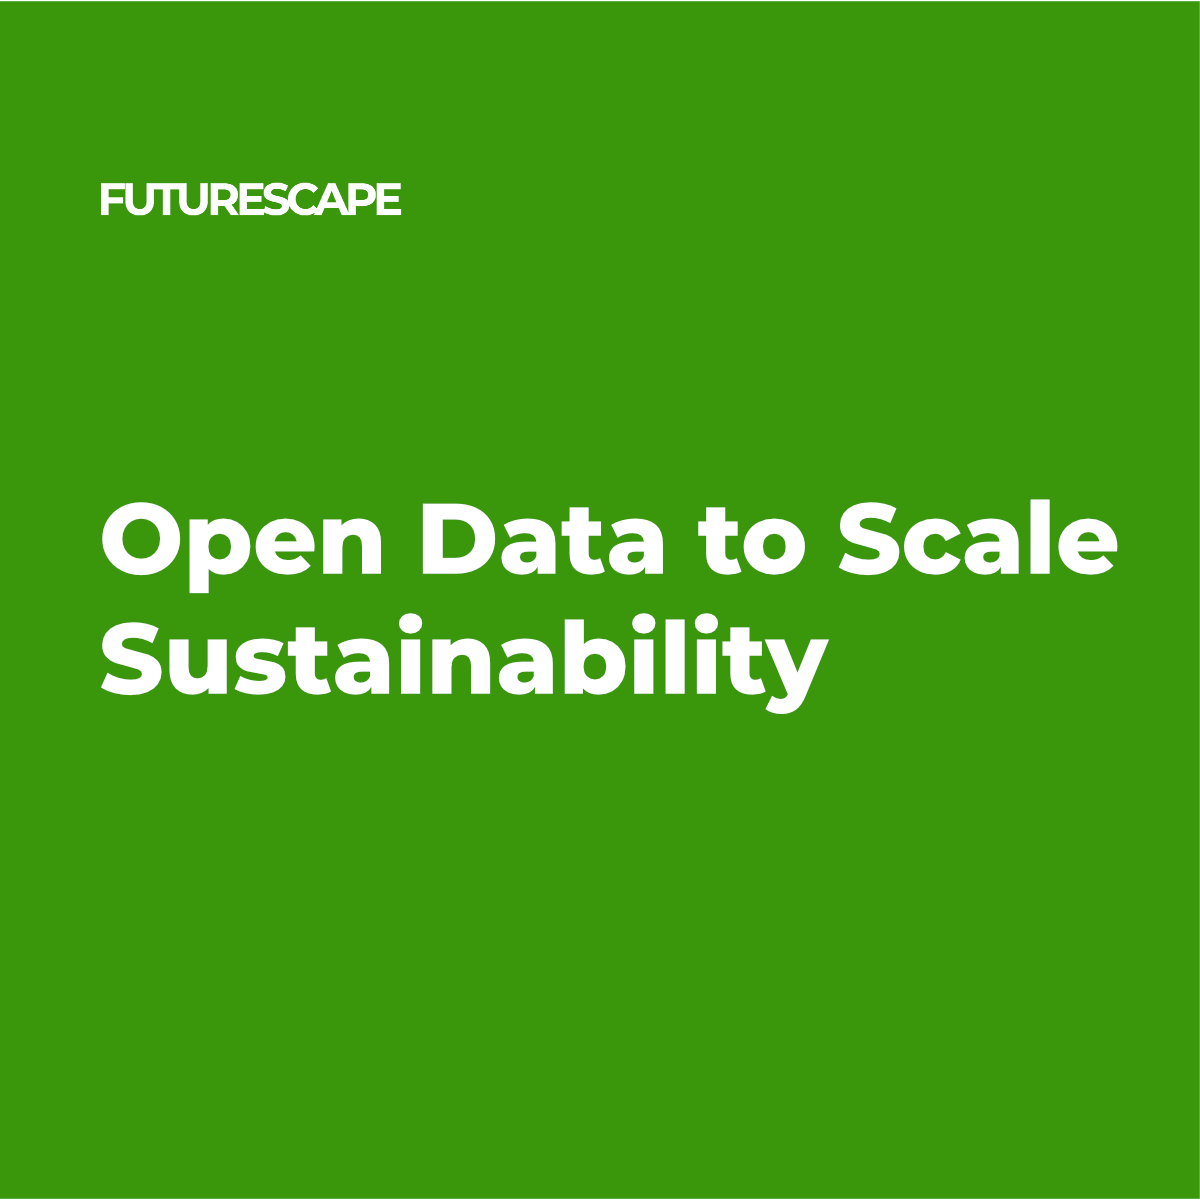 twitter-card-Open Data to Scale Sustainability